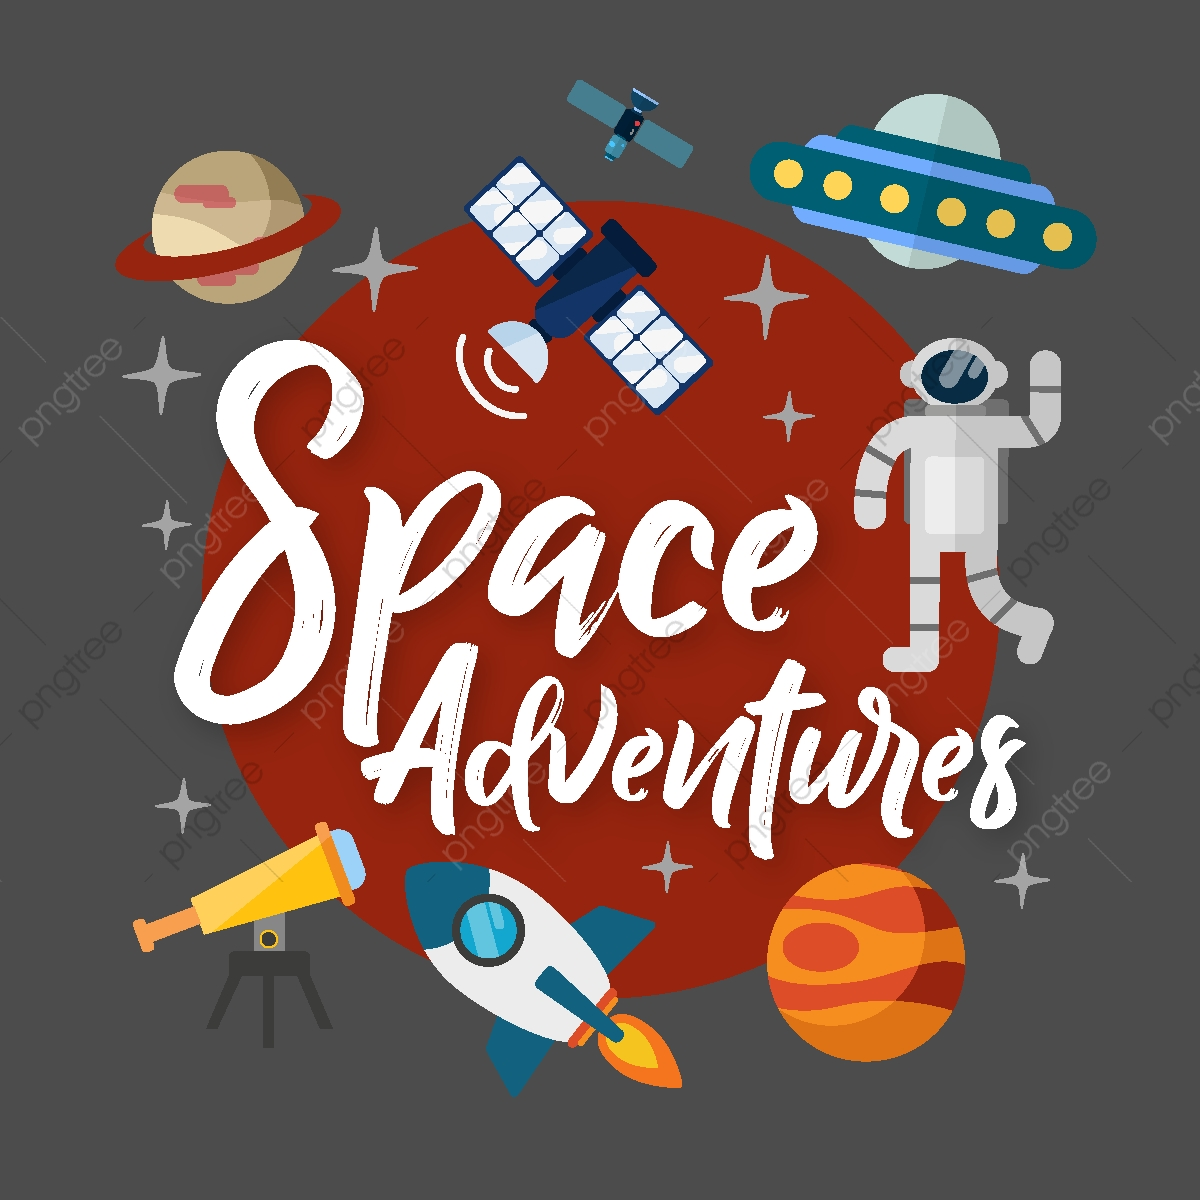 Space adventures png and. Adventure clipart adventure theme